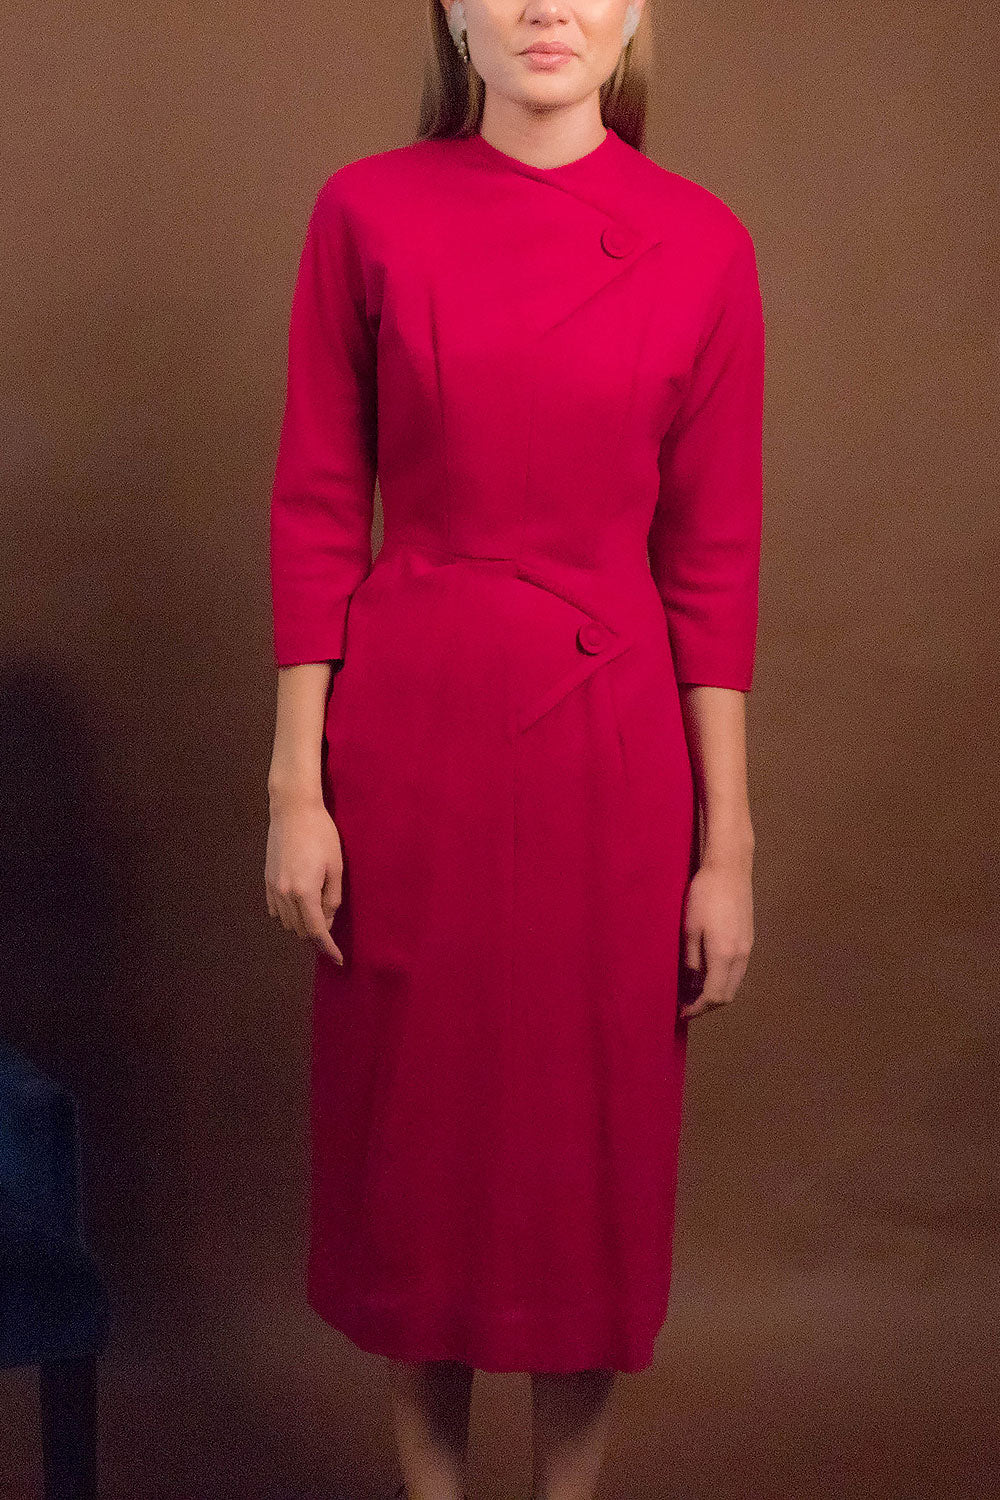 40s Wool Fuchsia Dress